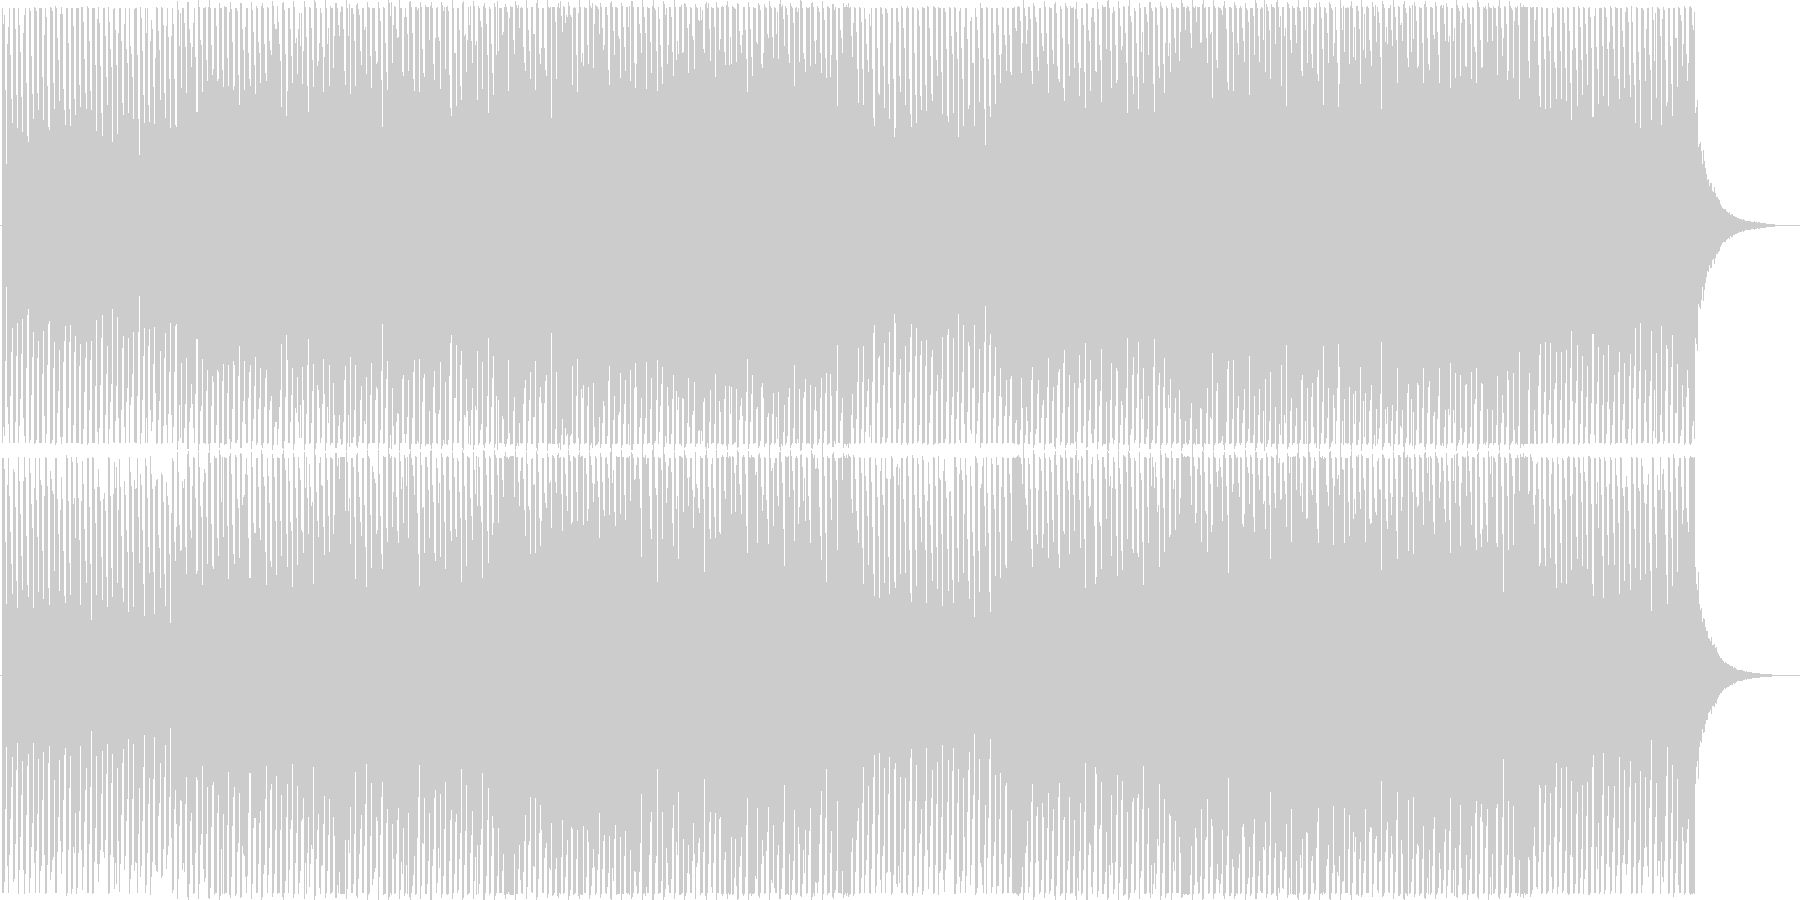 Uplifting Corporate's unreproduced waveform